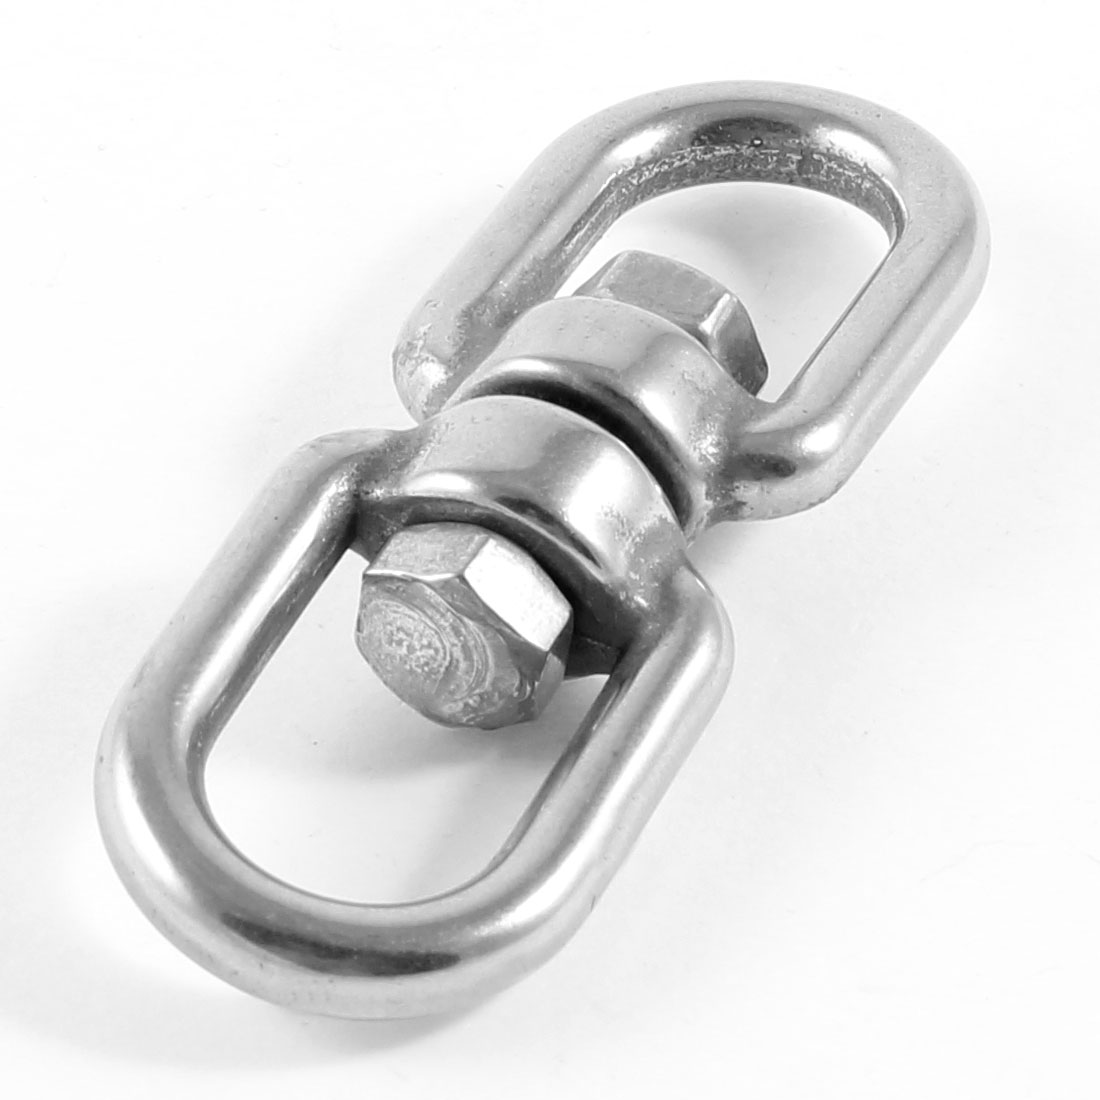 "Stainless Steel 5mm 1/5"" Eye to Eye Swivel for Marine Mooring"